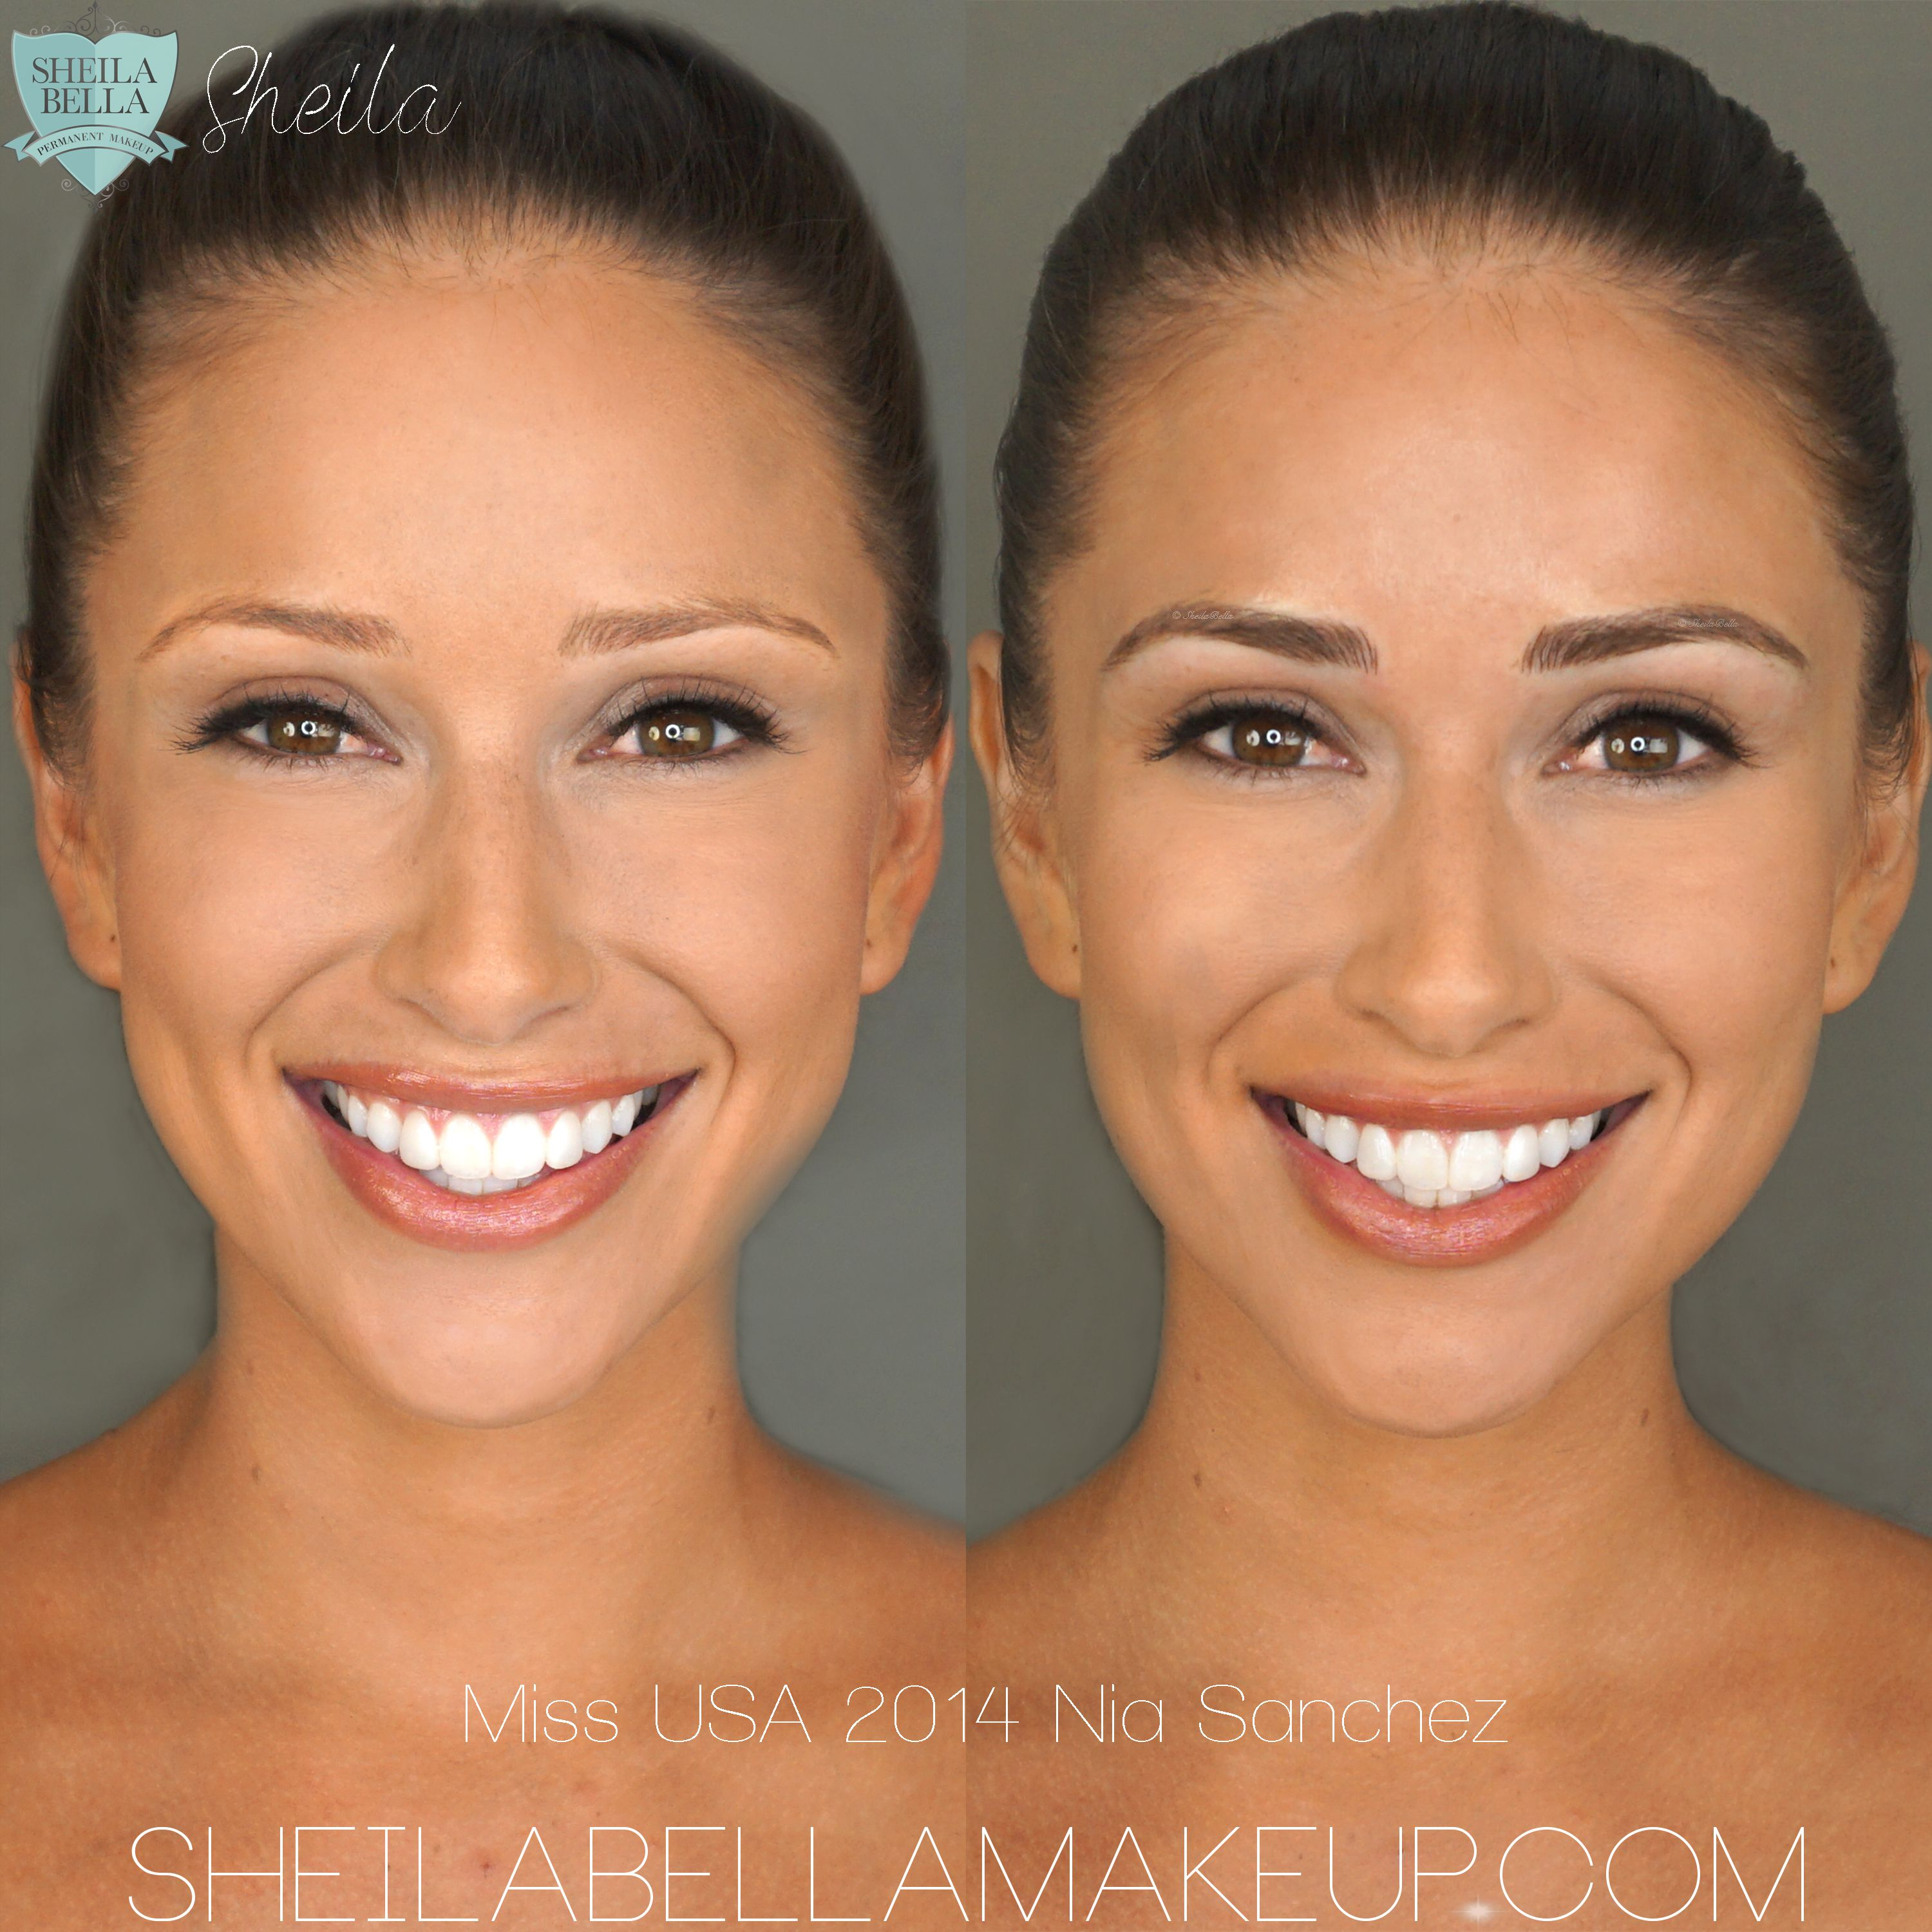 brows gallery - sheila bella permanent makeup